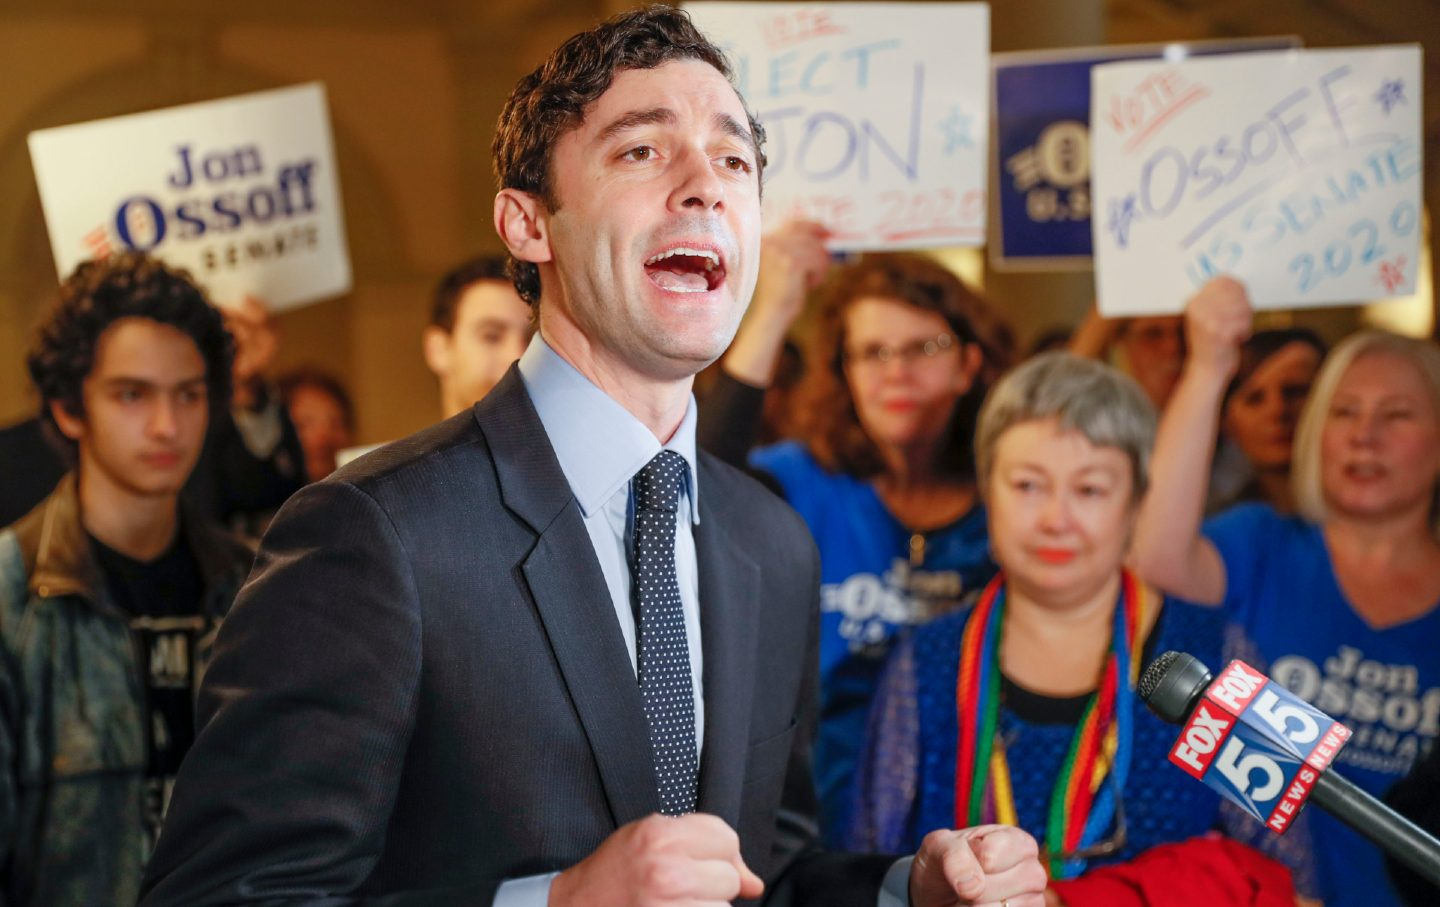 Jon Ossoff speaks to the media, surrounded by a supportive crowd.